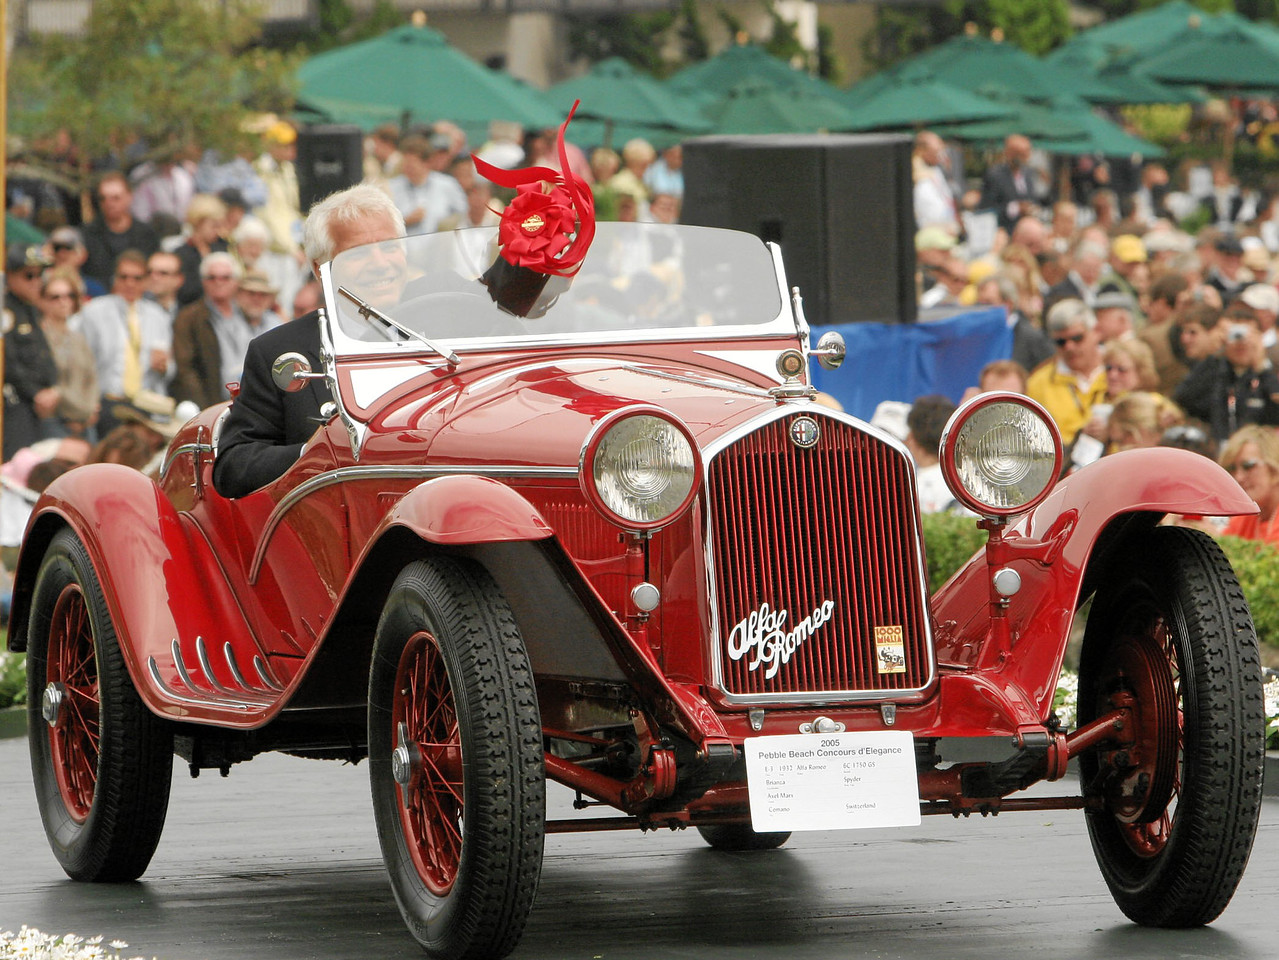 1932 Alfa Romeo 6C 1750 GS Brianza Spyder owned by Axel Marx from Comano, Switzerland 2nd Class E-3 (Alfa Romeo 6 Cylinder to 1933)